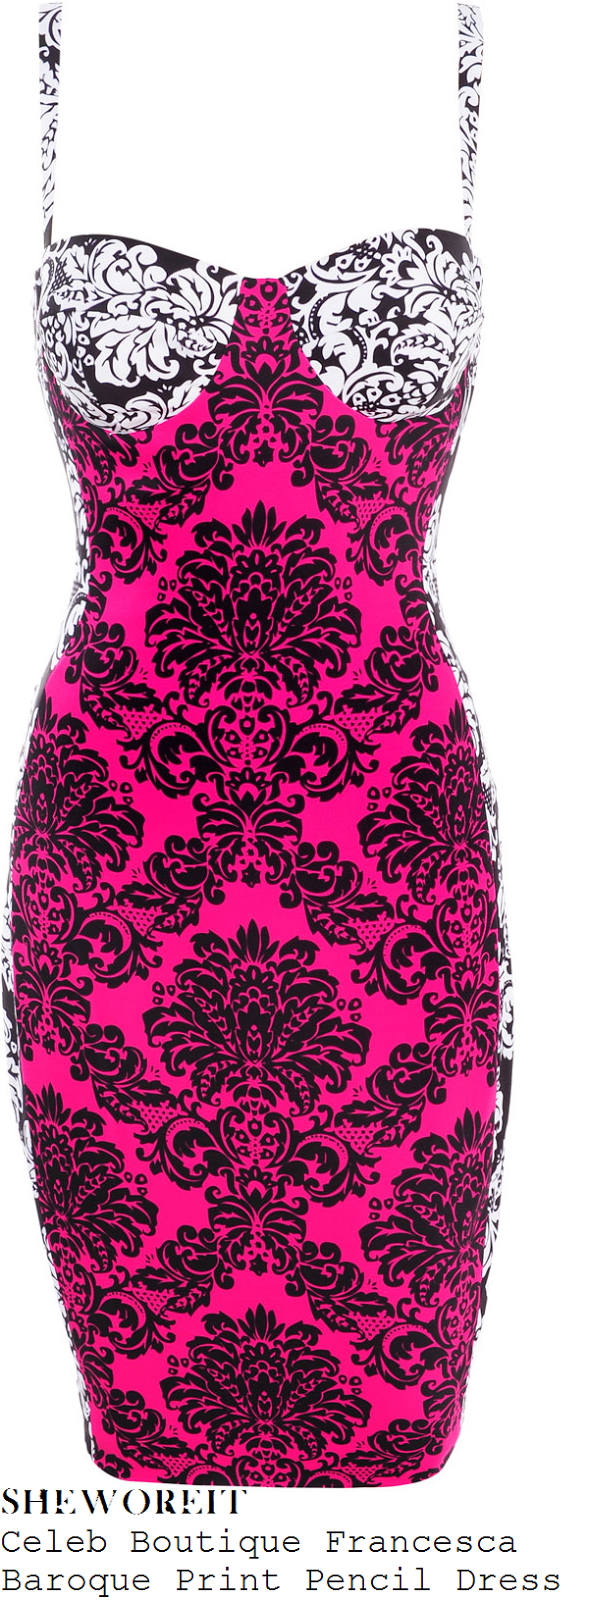 jessica-wright-hot-pink-white-black-baroque-print-pencil-dress-towie-vegas